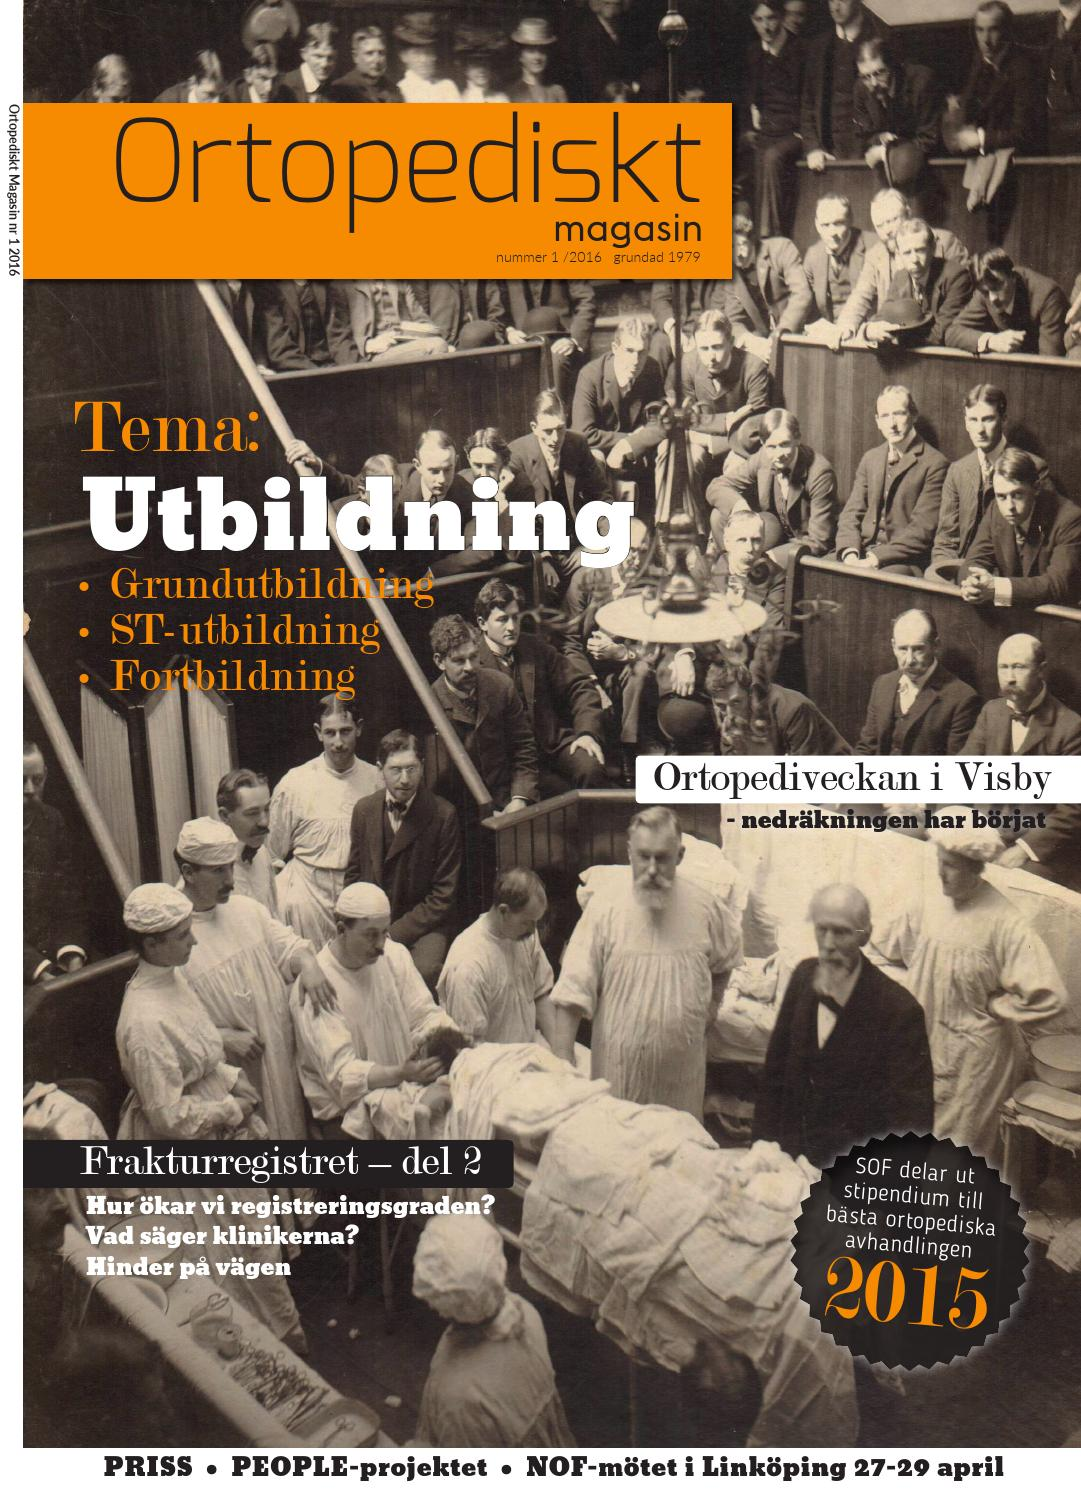 Ortopedisk Magasin nr 1 2016 by Ortopediskt Magasin - issuu 8b666c0b19682